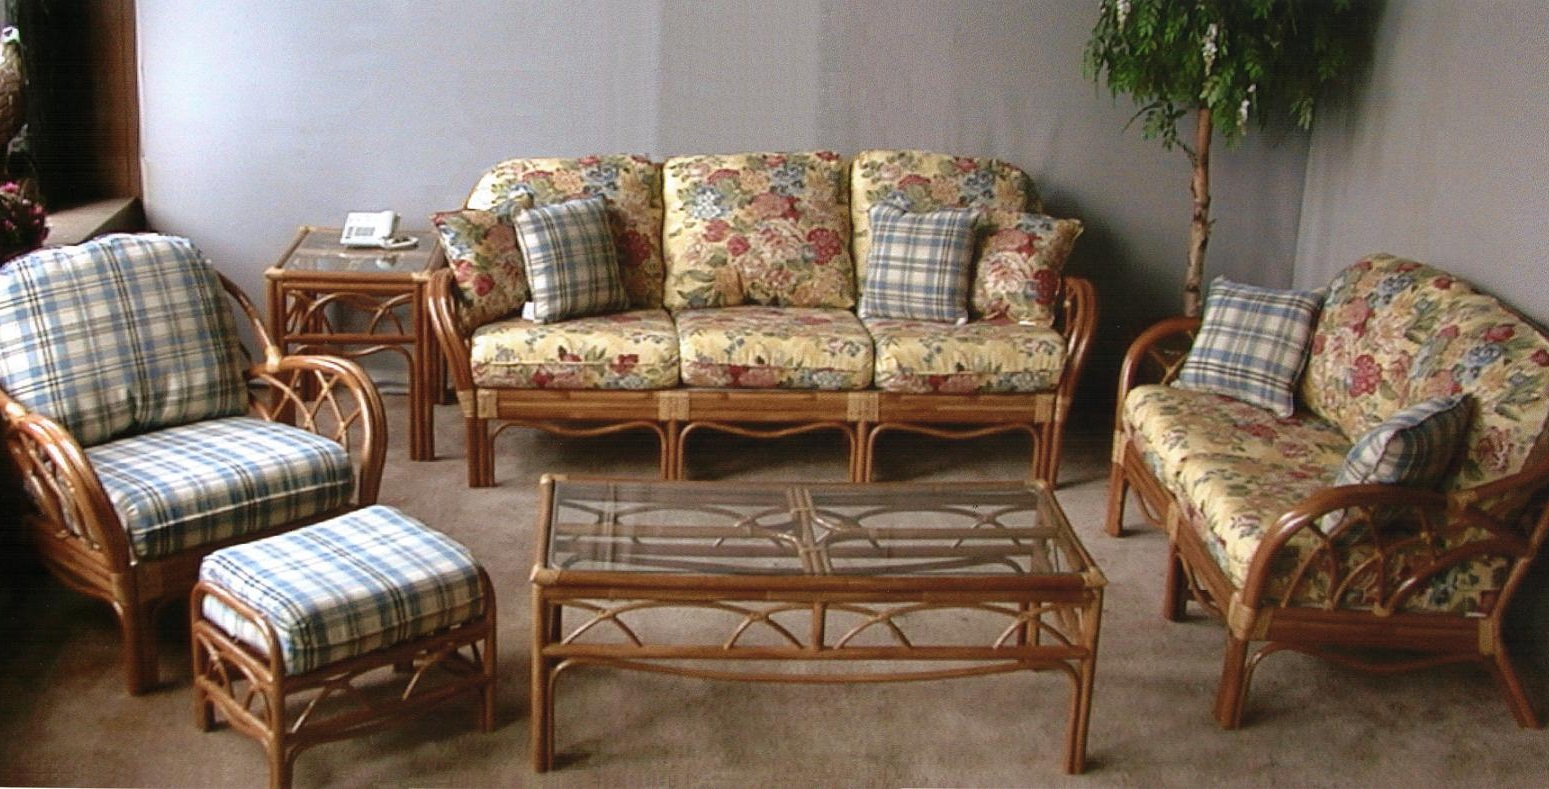 Aruba Rattan 6 Piece Seating Set